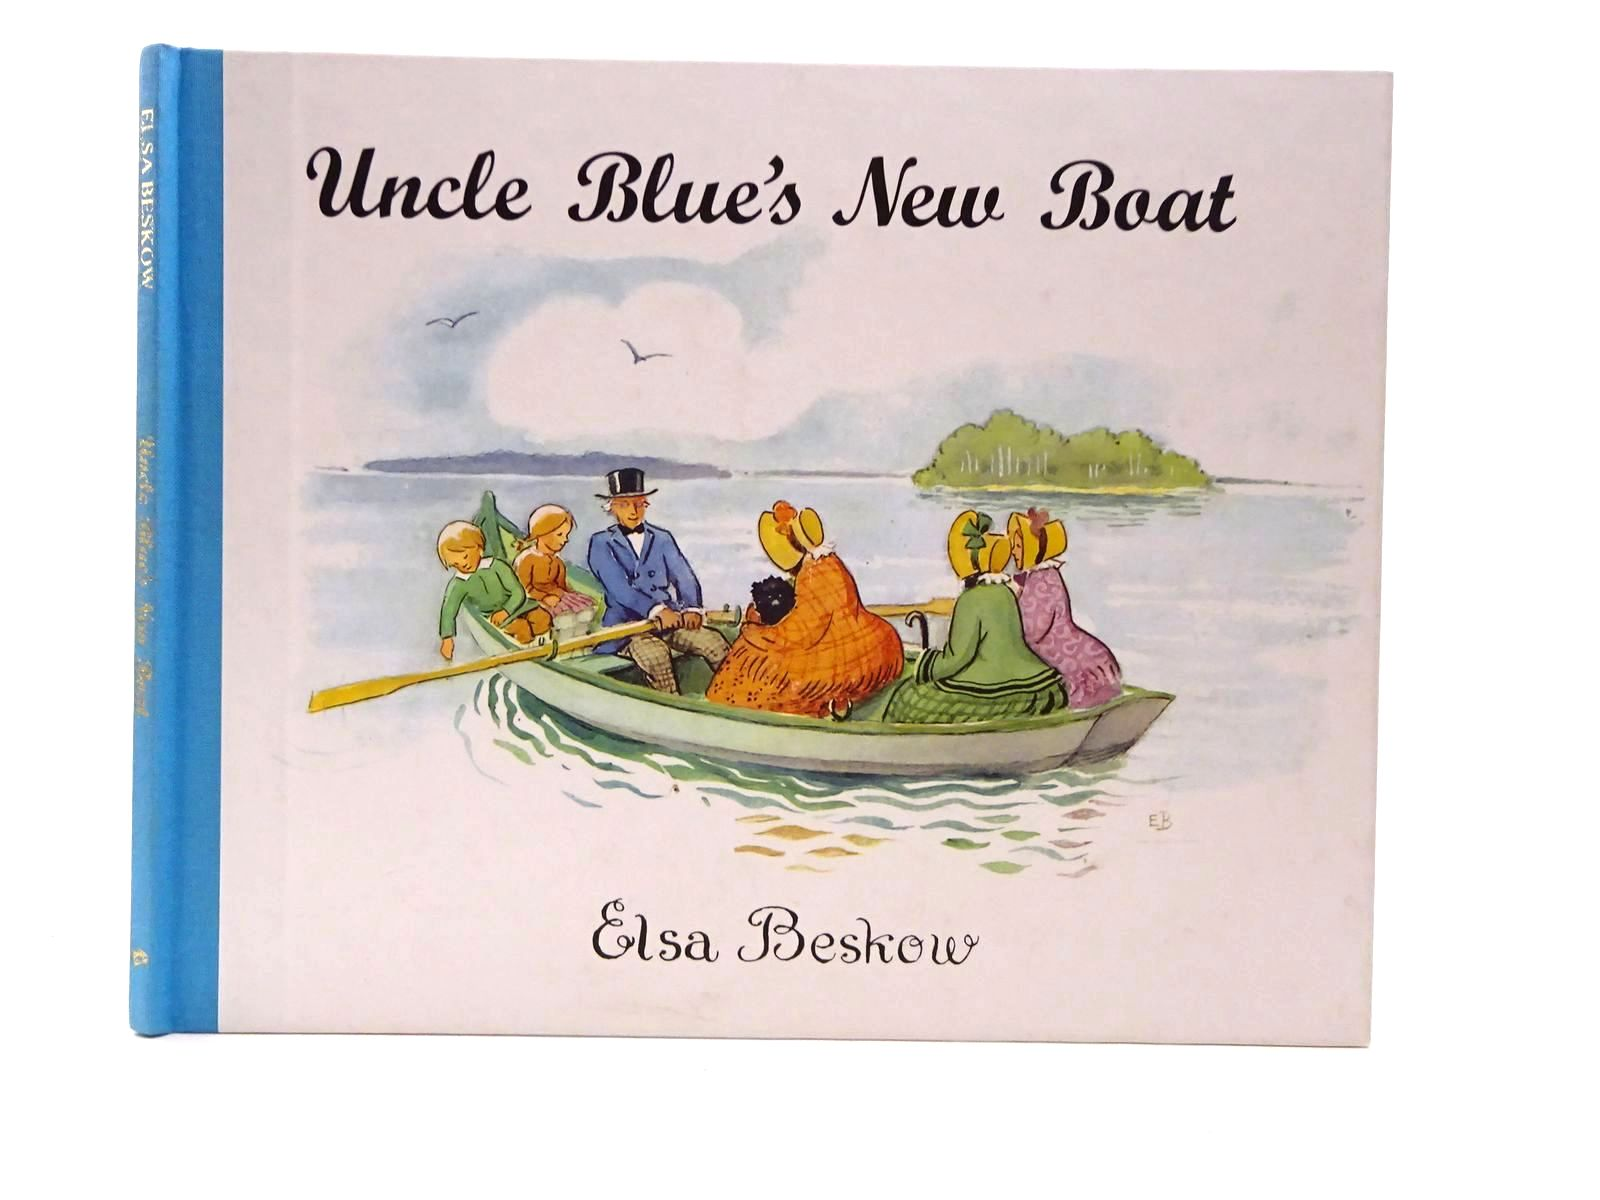 Photo of UNCLE BLUE'S NEW BOAT written by Beskow, Elsa illustrated by Beskow, Elsa published by Floris Books (STOCK CODE: 1815751)  for sale by Stella & Rose's Books